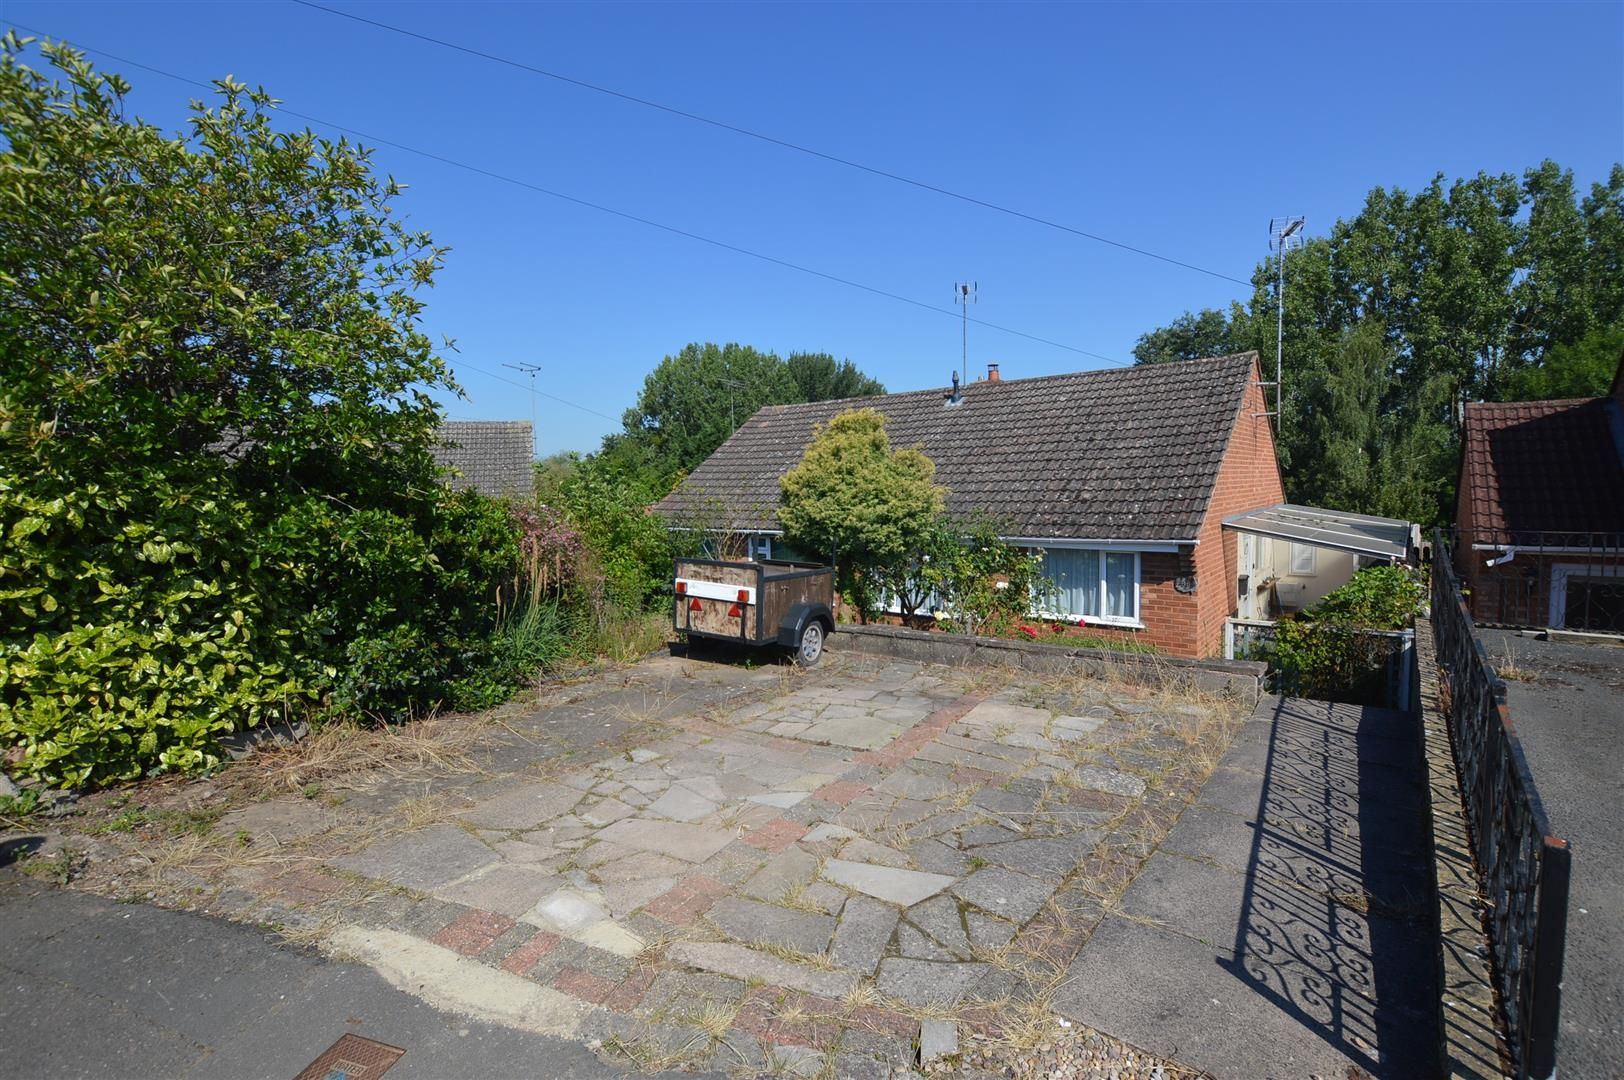 2 bed semi-detached-bungalow for sale in Leominster  - Property Image 13